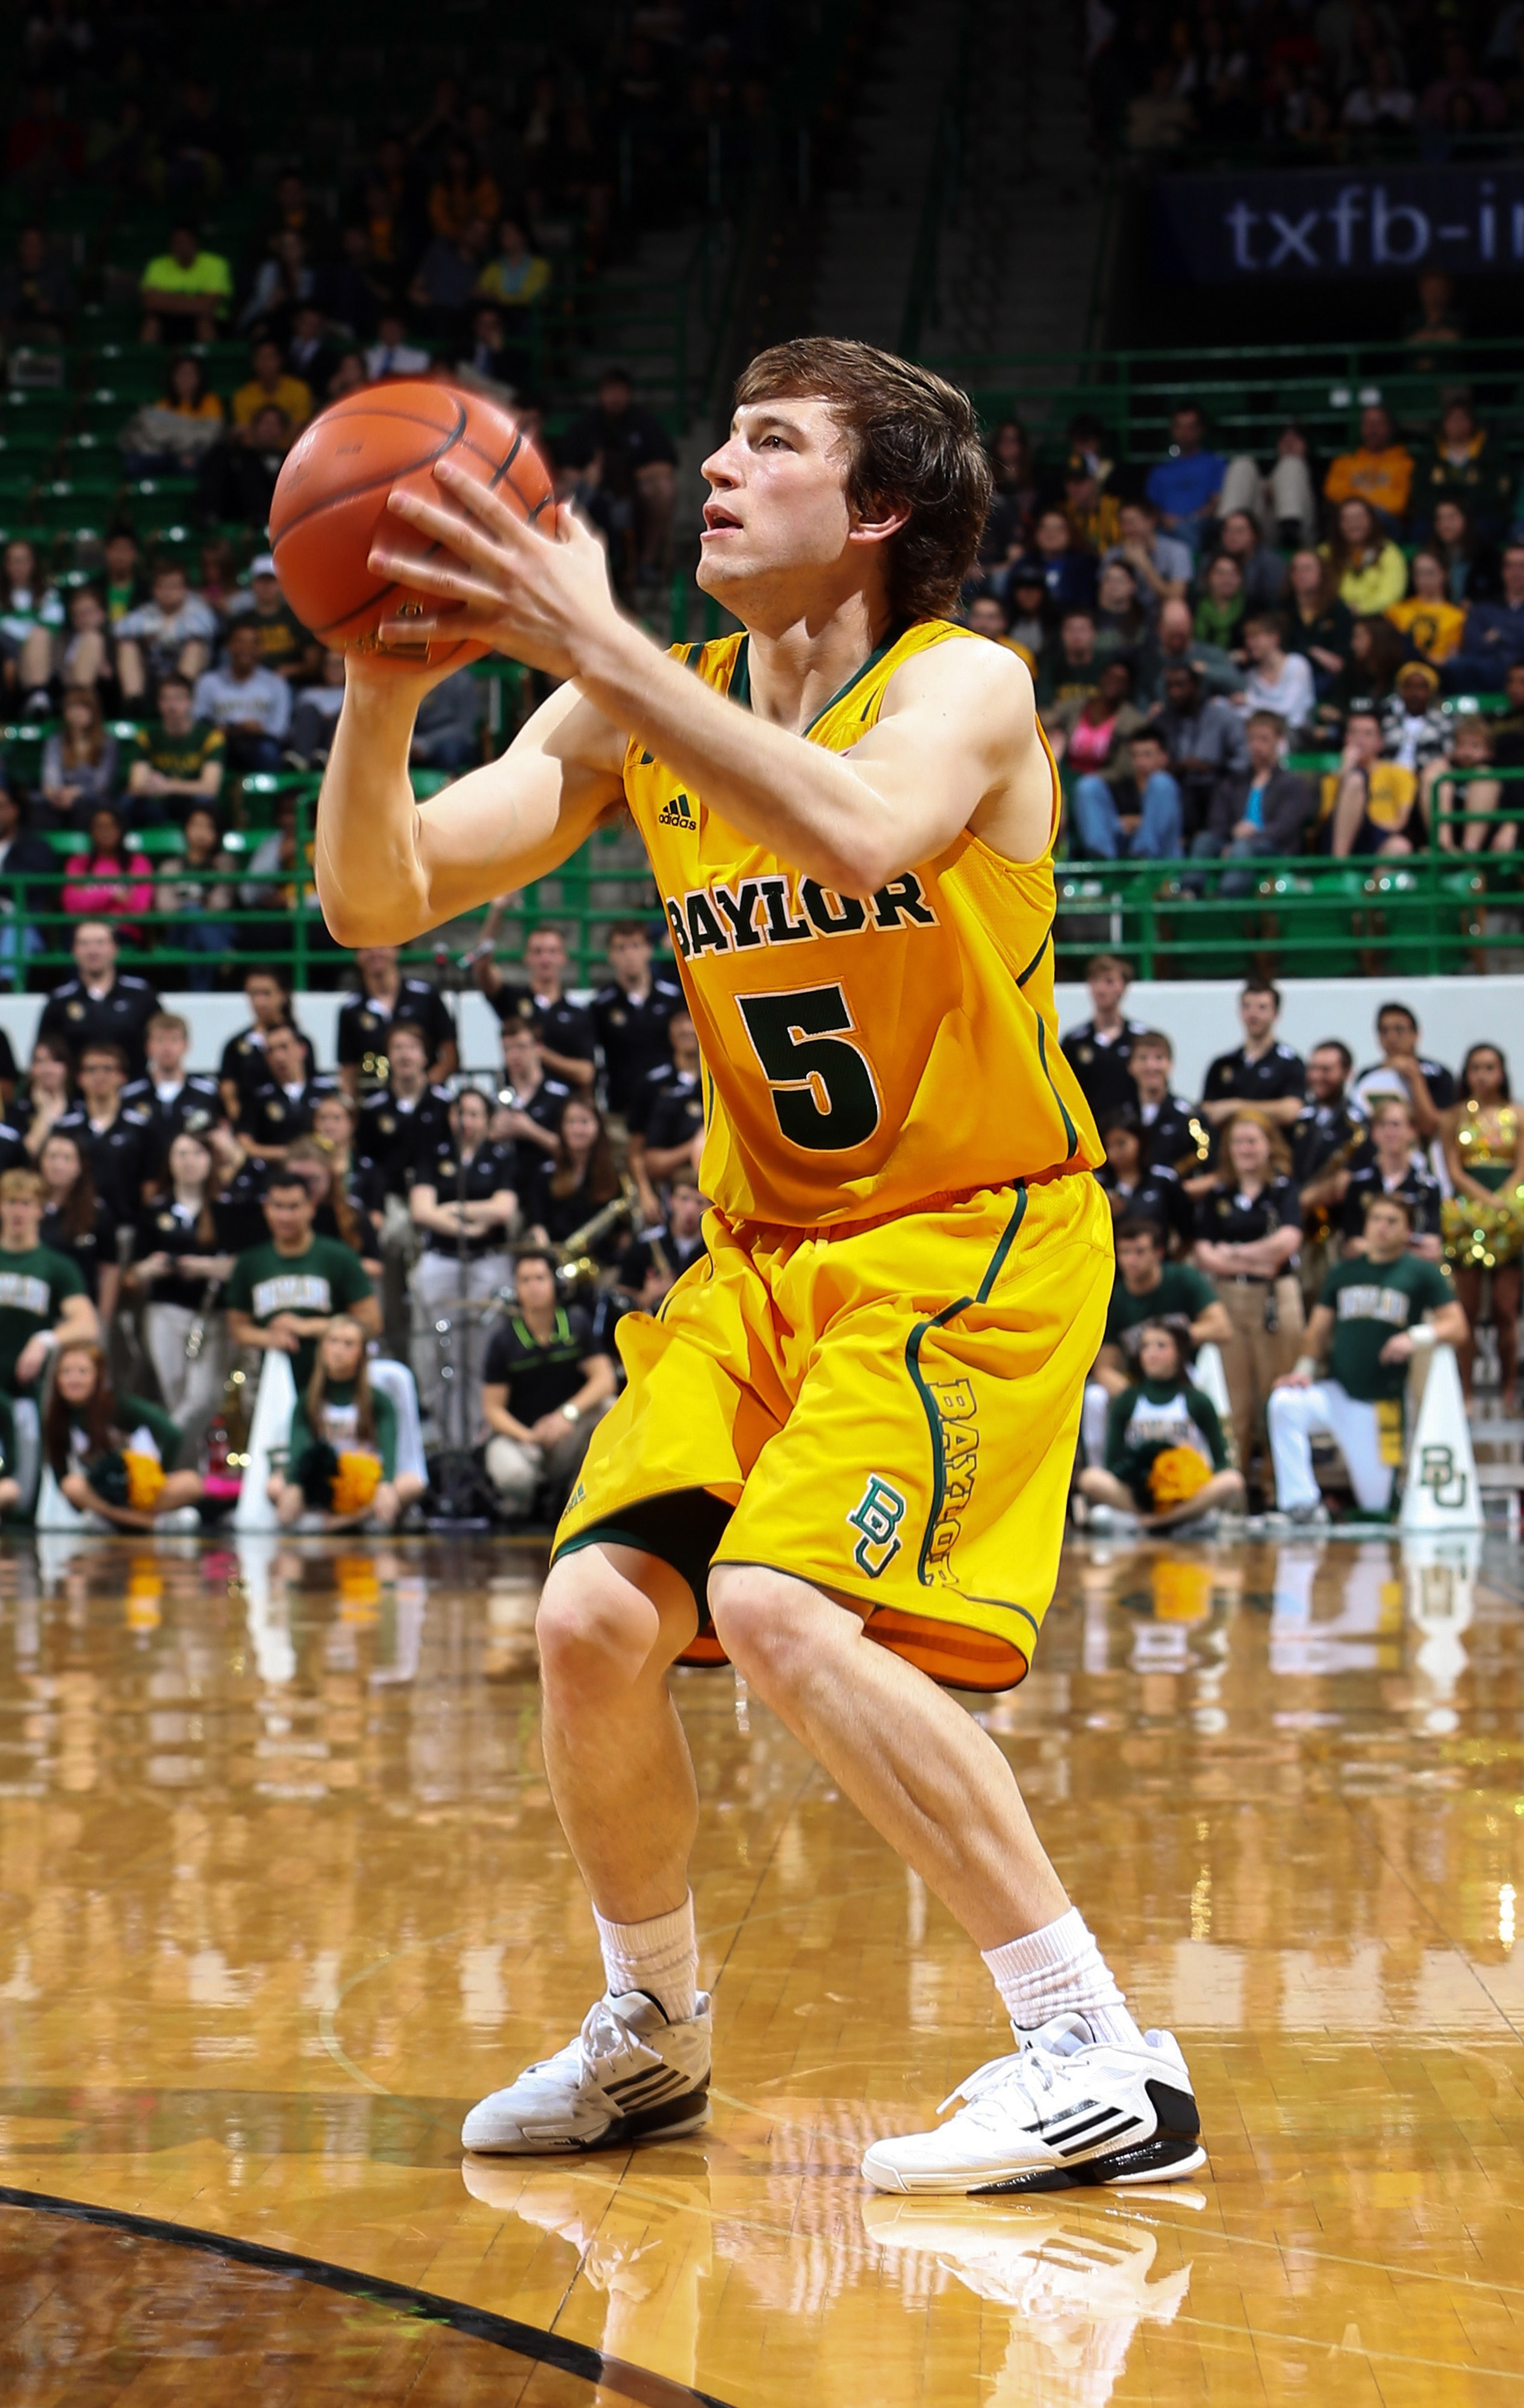 Heslip, who's bringing in shooting to the National Program will be a big piece for Baylor this season.